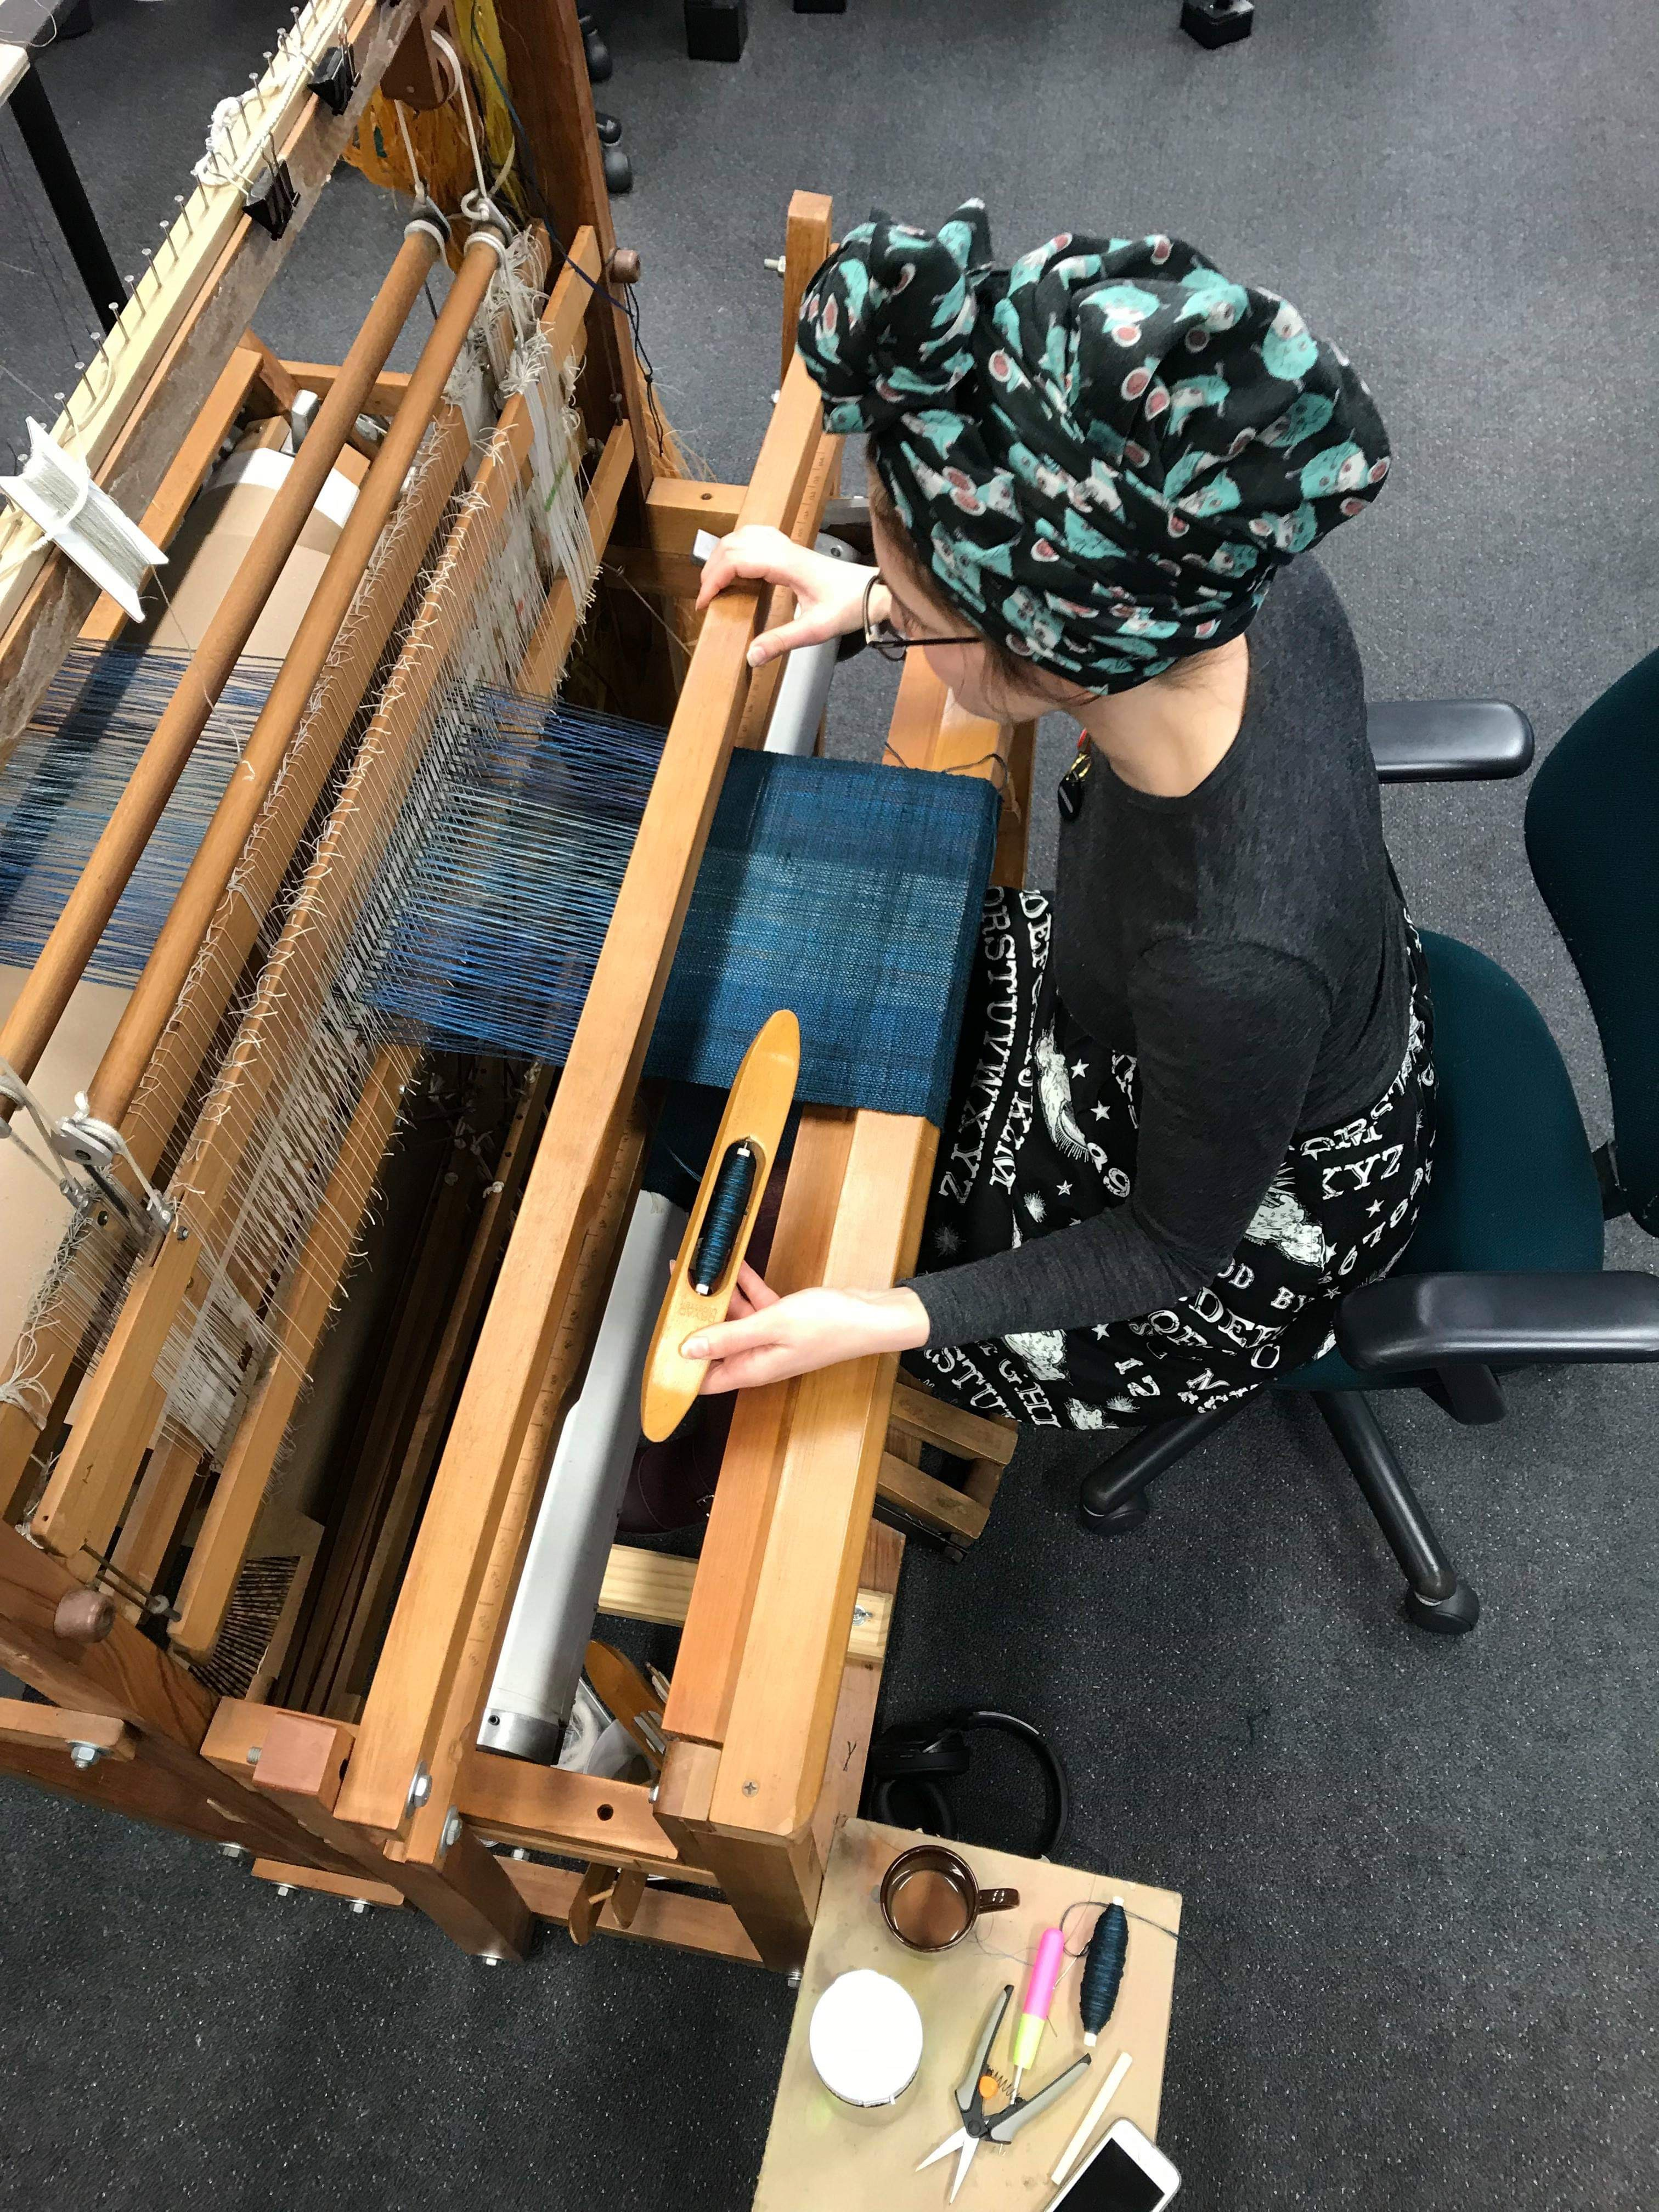 Weaving at the loom